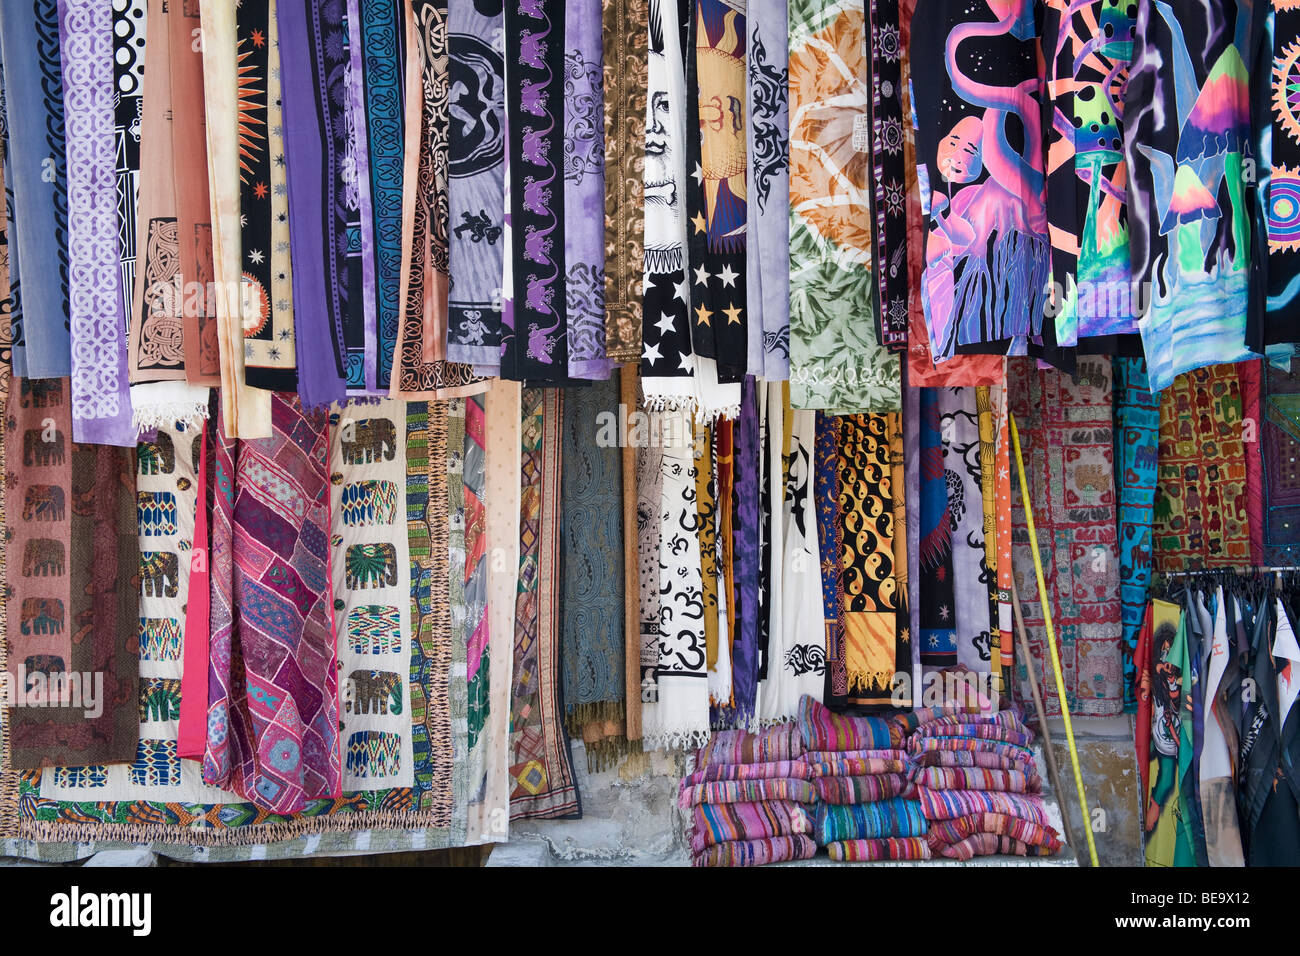 Shop selling scarves, clothes and souvenirs for tourists in Plaka ...